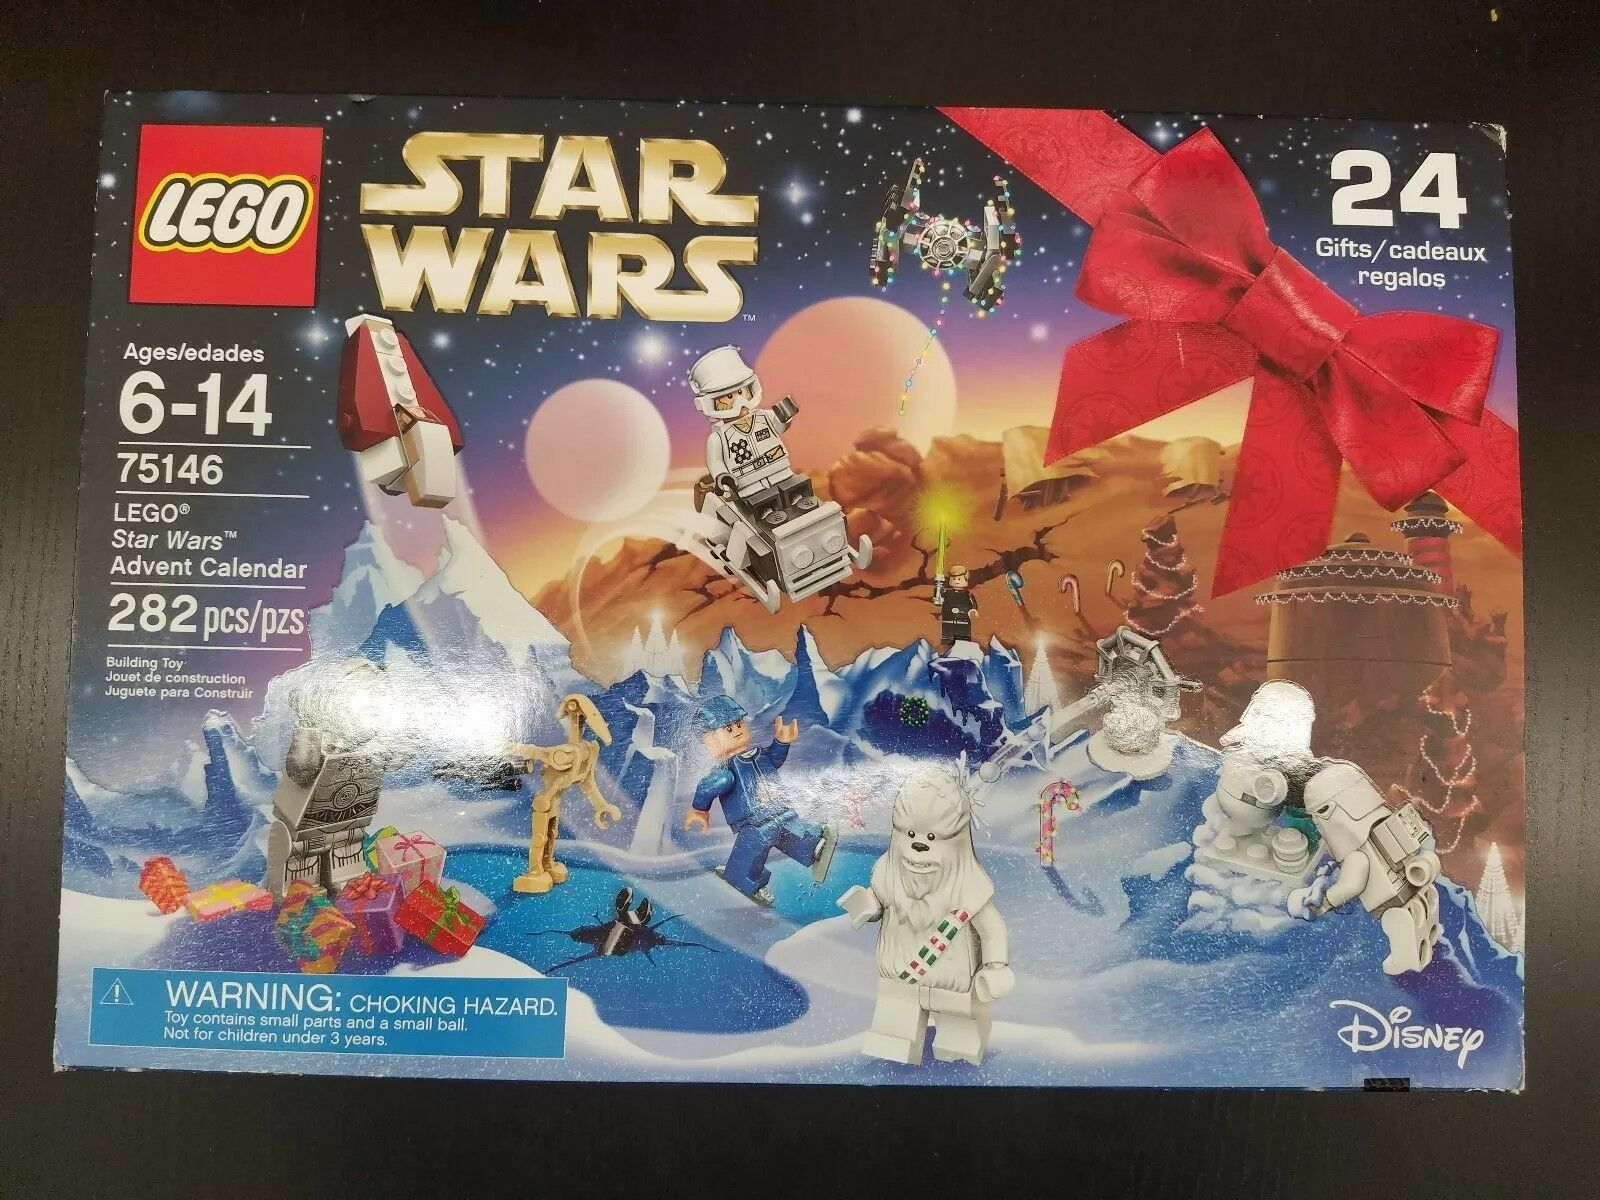 LEGO 75146 75146 75146 Star Wars Advent Calendar Building Kit (282 Piece) (2016) new rare bc51cd